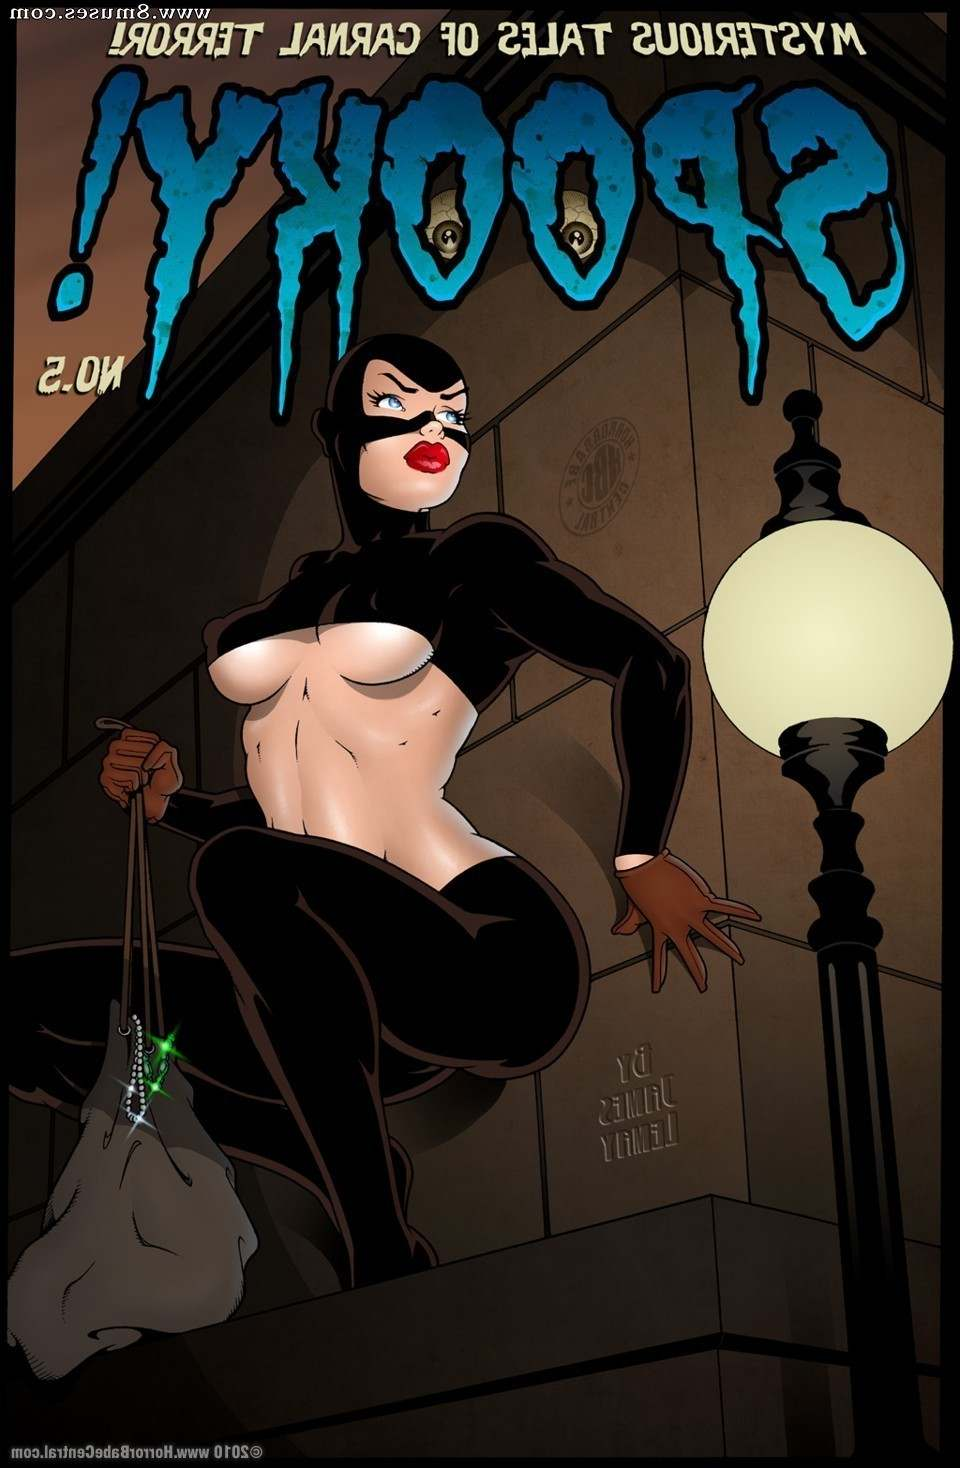 James-Lemay-Comics/Spooky Spooky__8muses_-_Sex_and_Porn_Comics_5.jpg